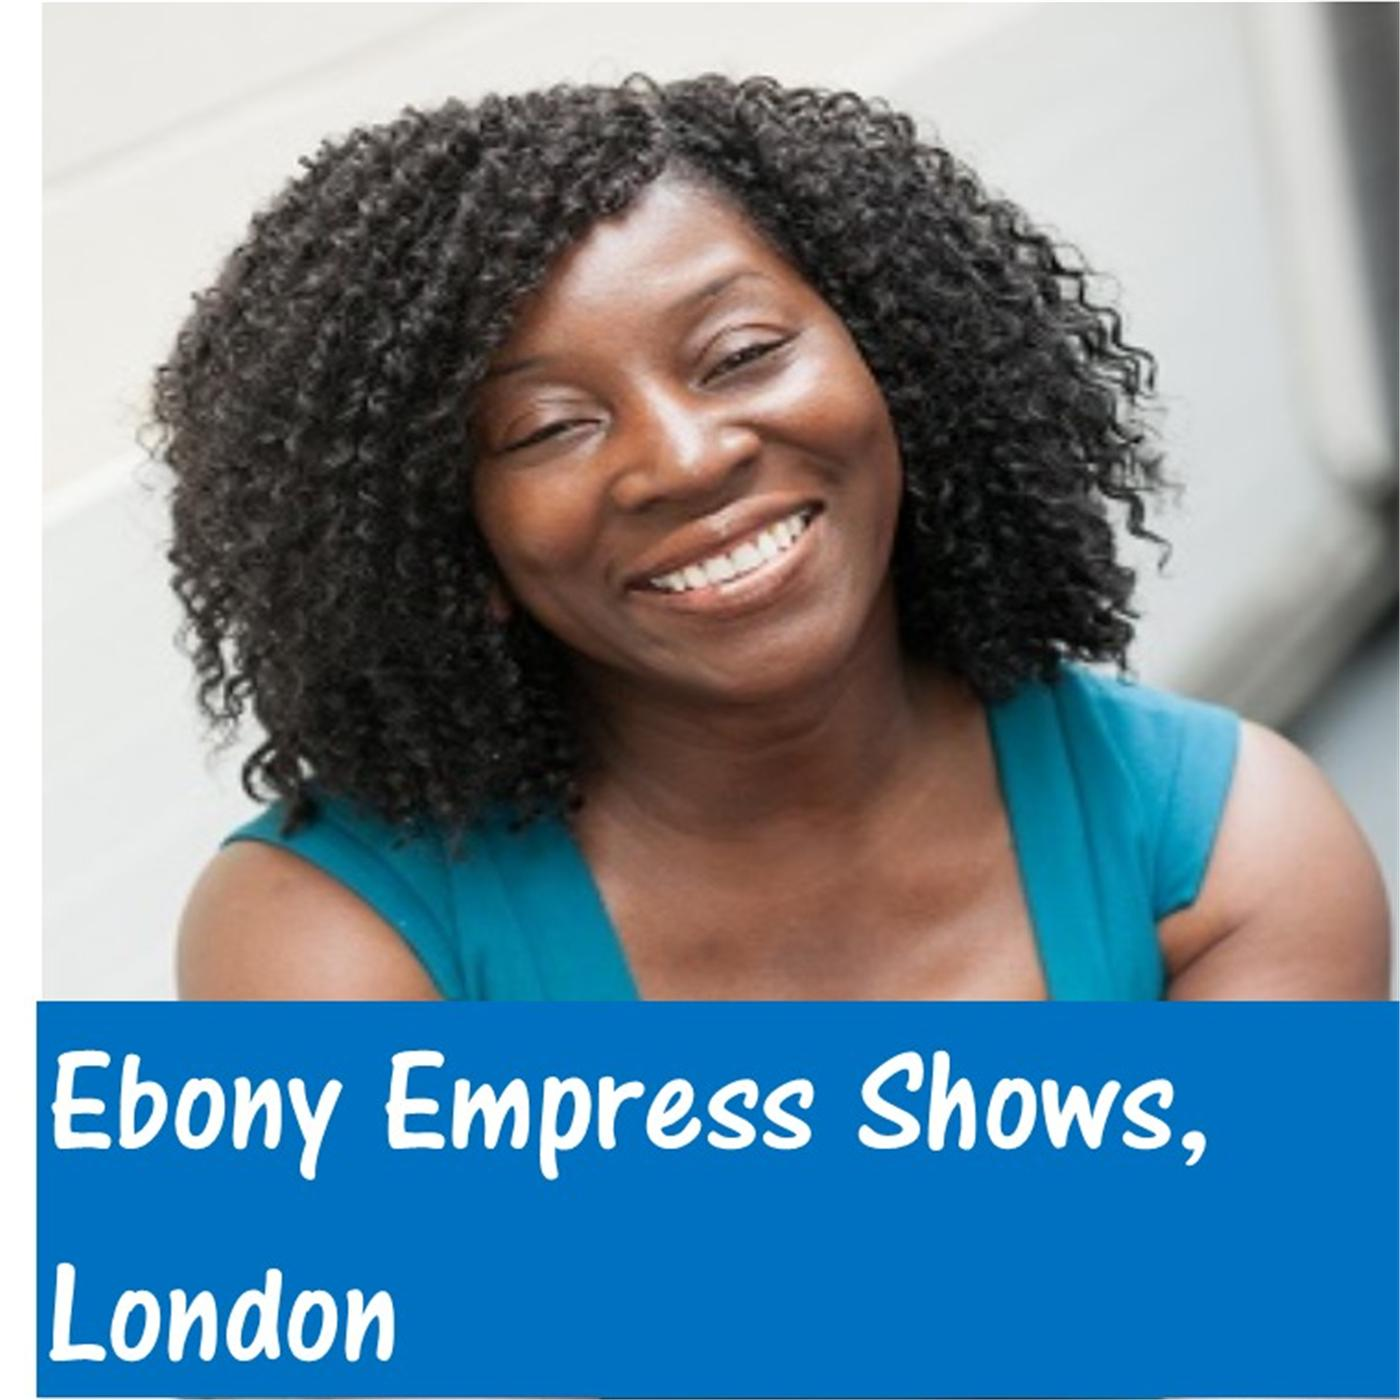 Ebony Empress Shows - EBR Award Winner